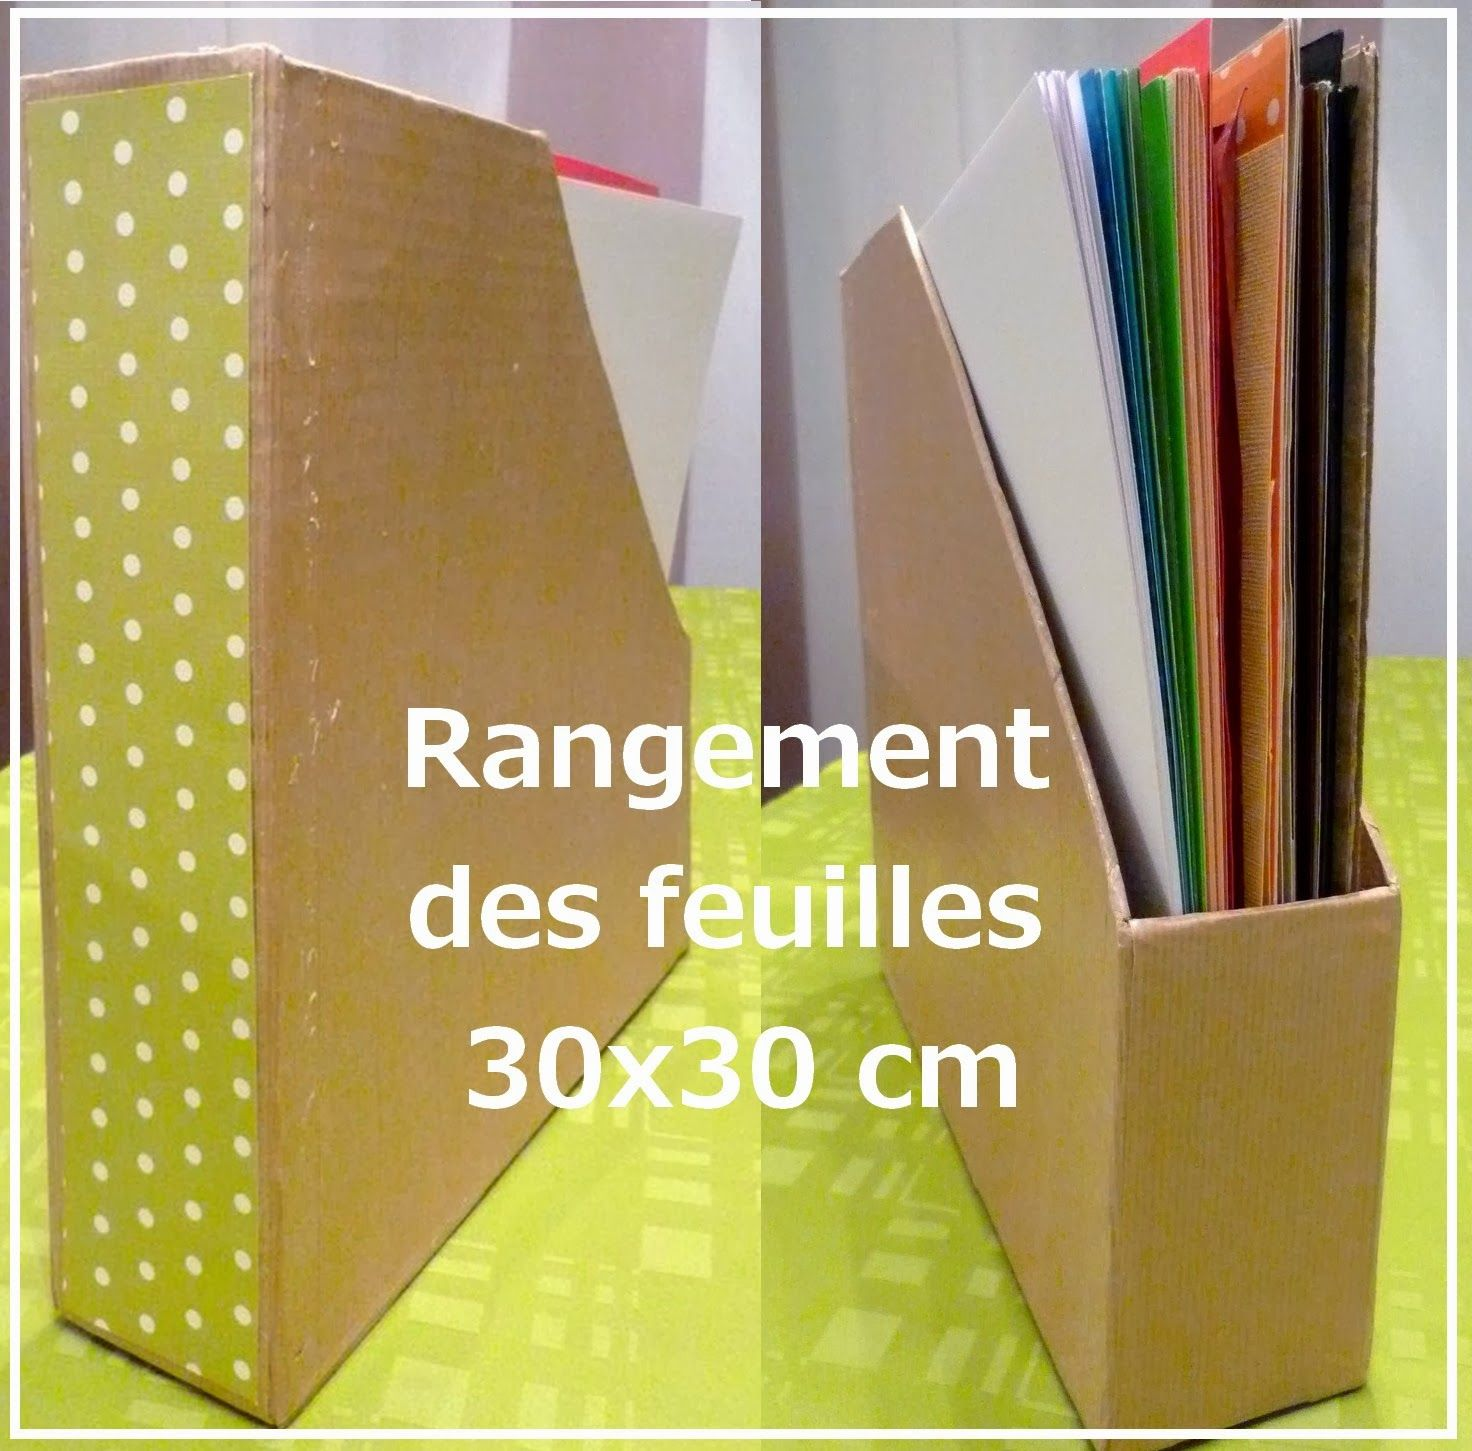 chez steph a scrap tuto rangement des feuilles 30 x 30cm fa on range revue compatible. Black Bedroom Furniture Sets. Home Design Ideas